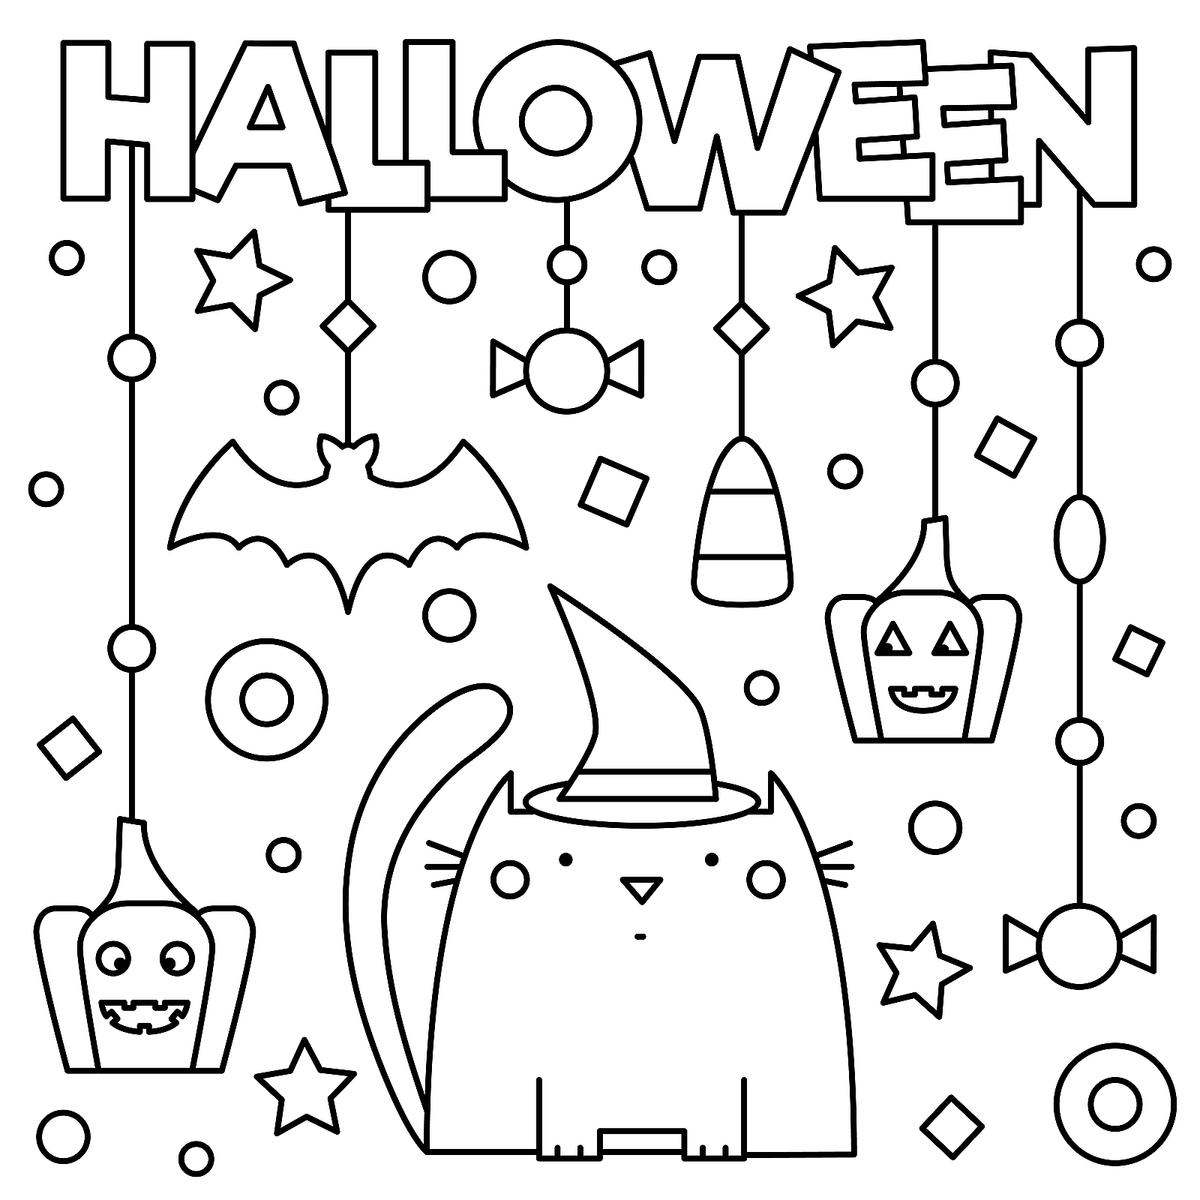 coloring halloween activities halloween coloring pages download free coloring sheets coloring halloween activities